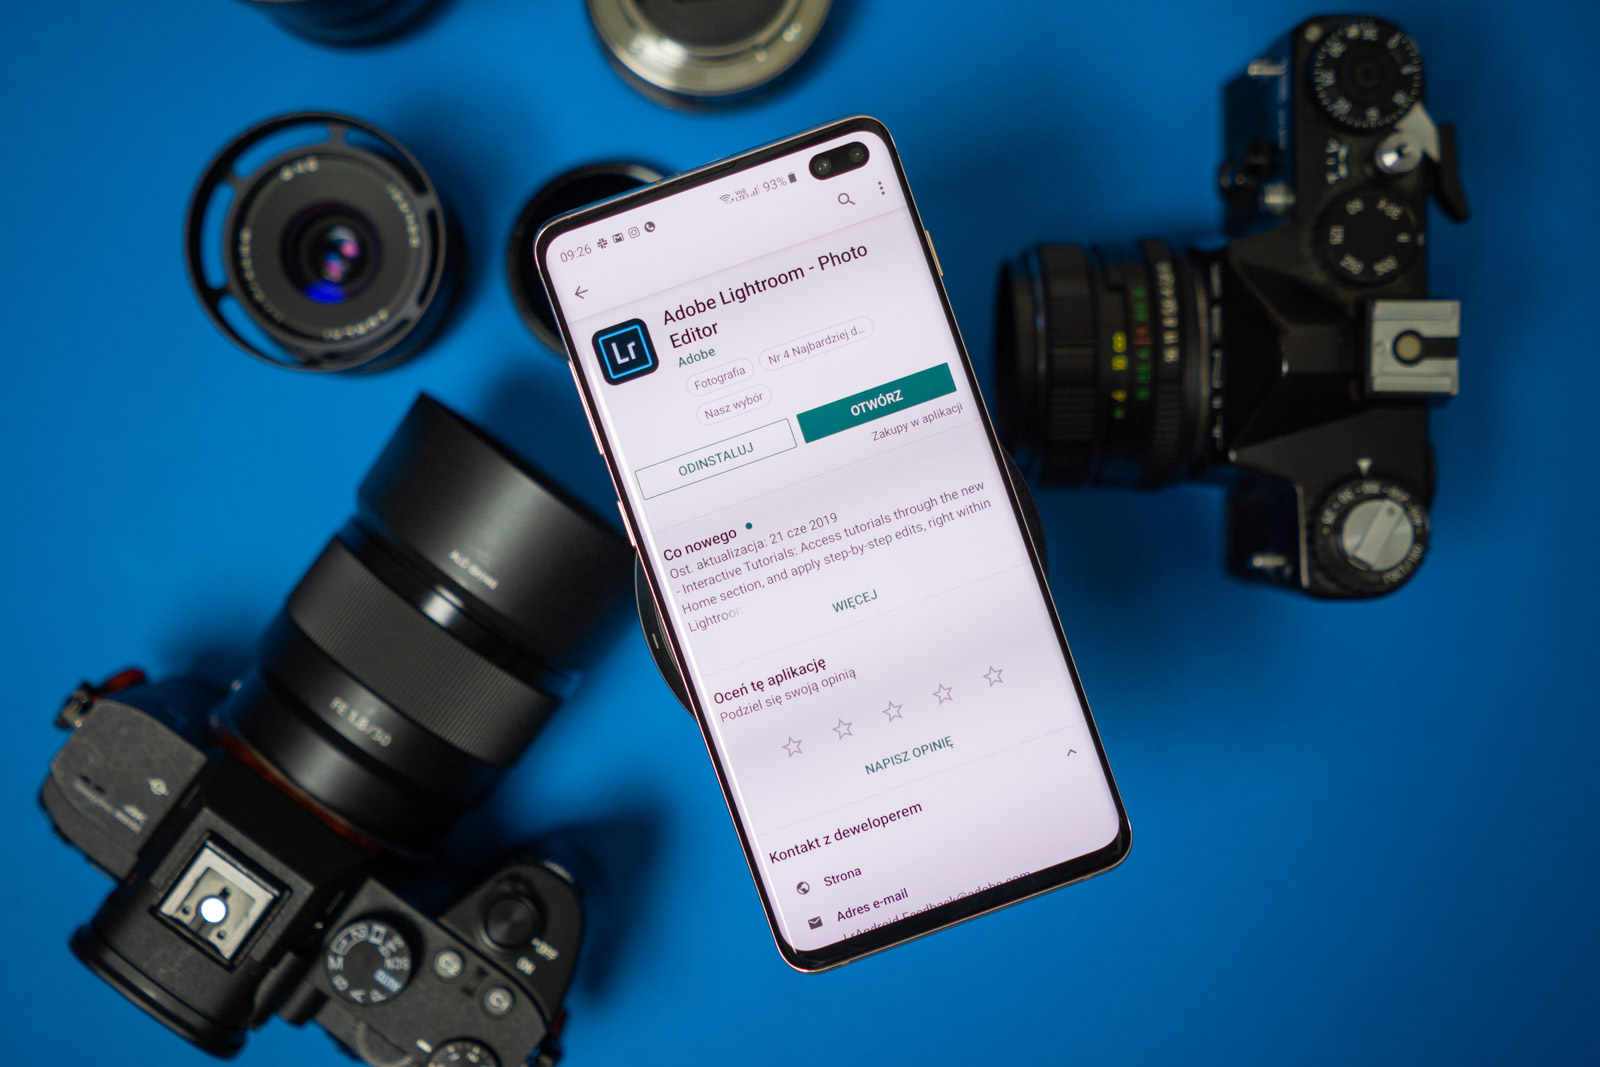 samsung galaxy s10+ performance edition 1tbchallenge